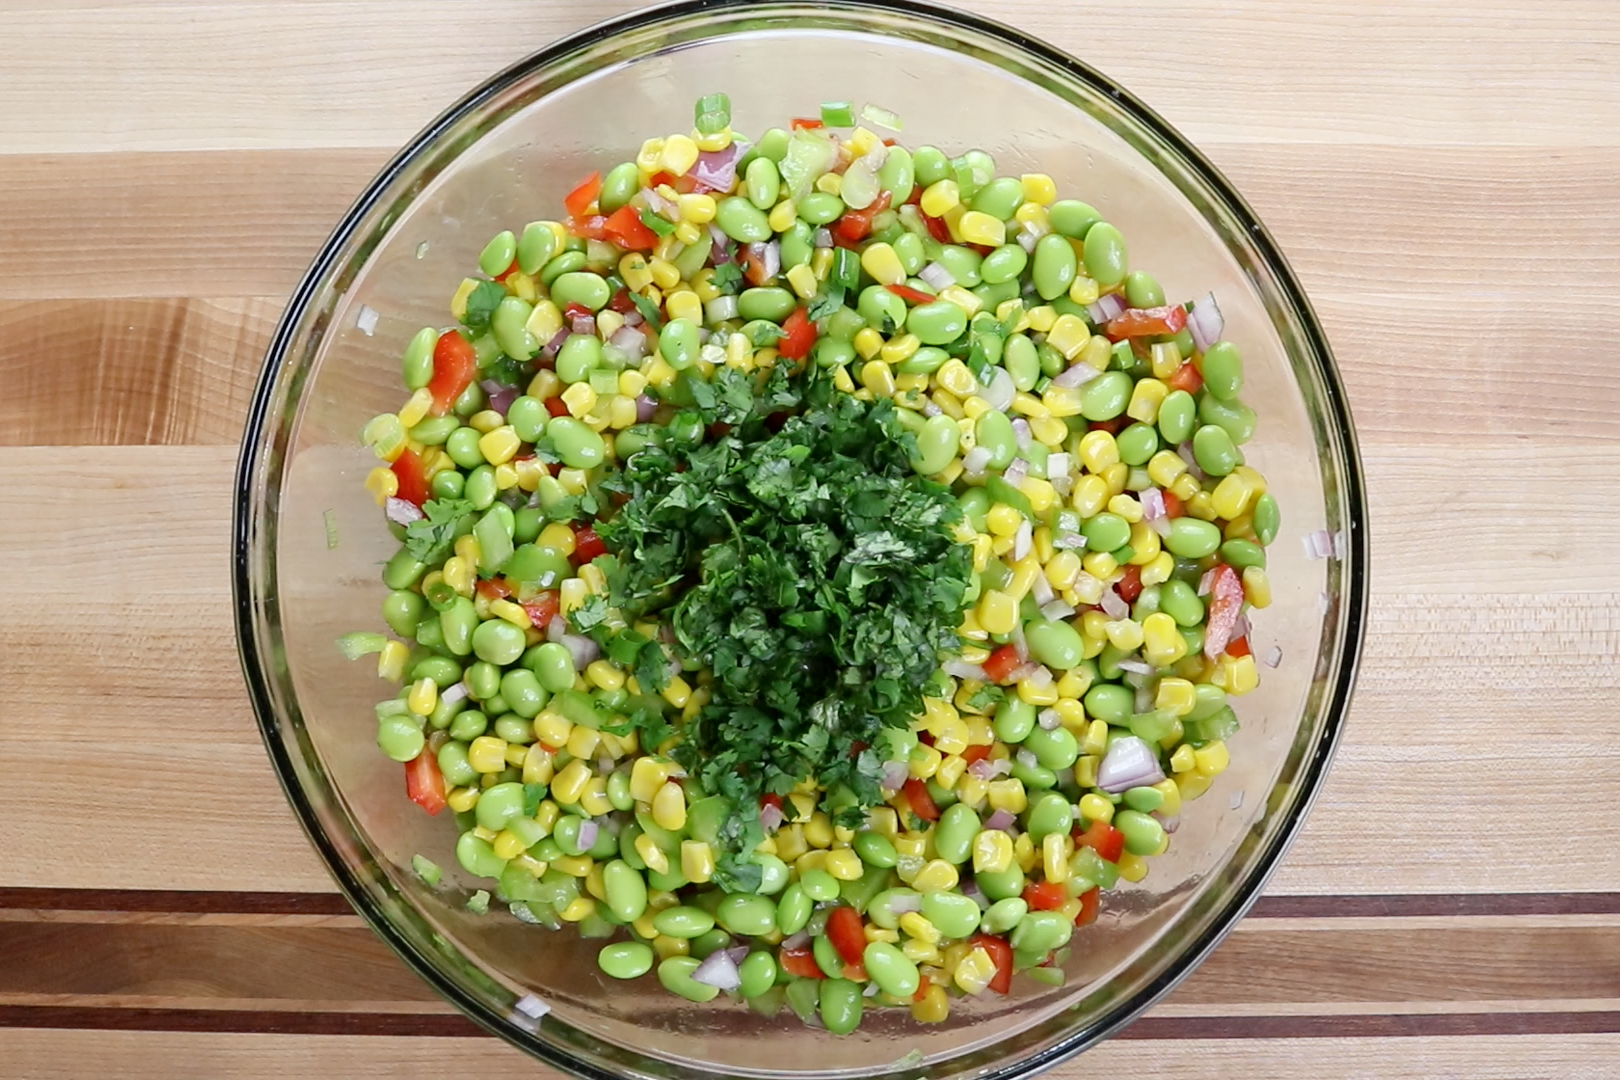 4. Add cilantro and lightly mix. -